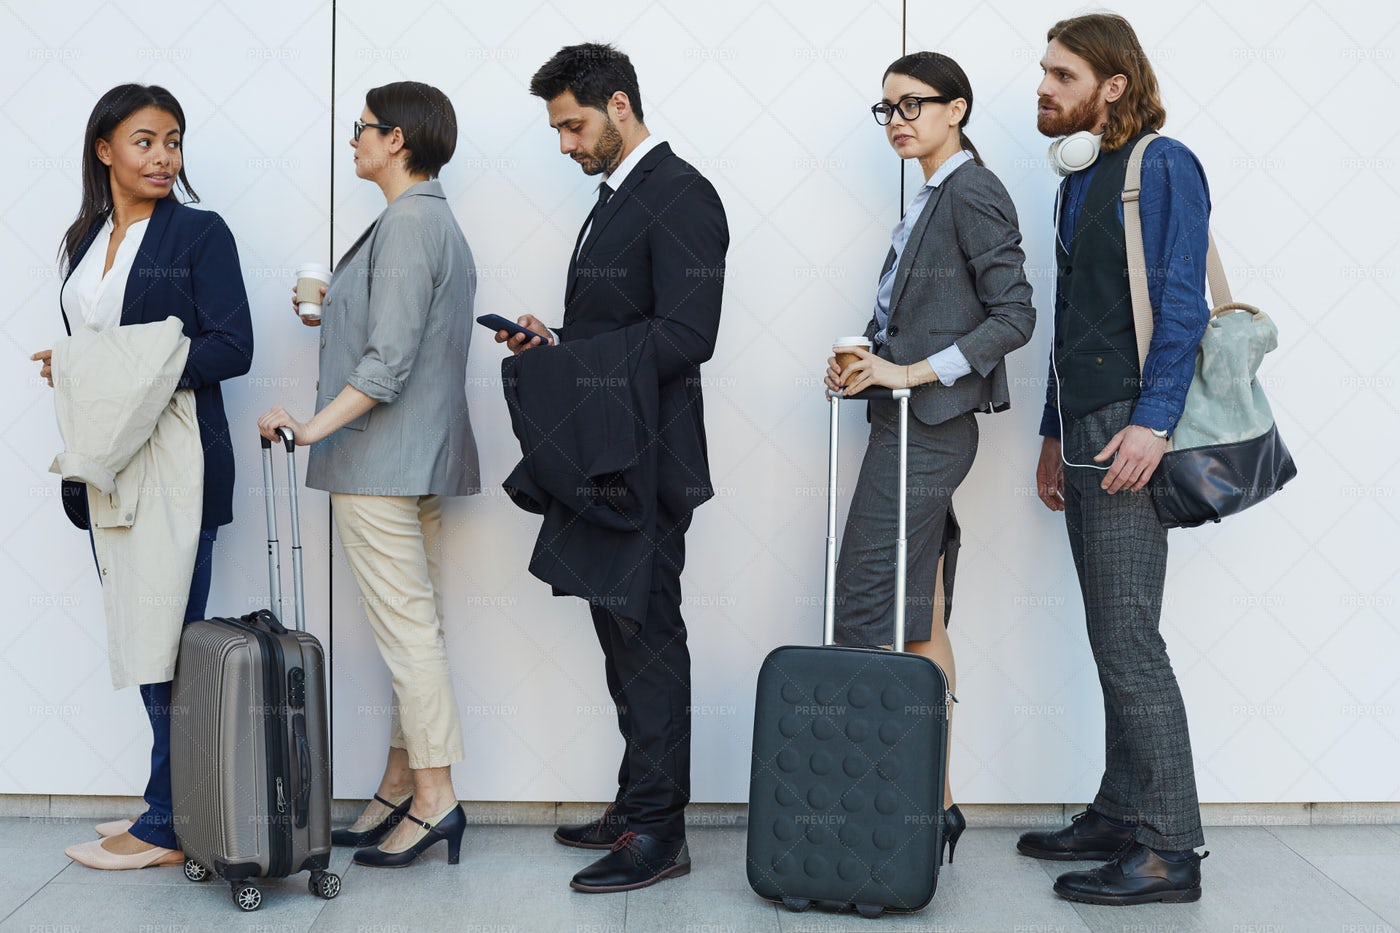 Multi-ethnic People With Luggage...: Stock Photos